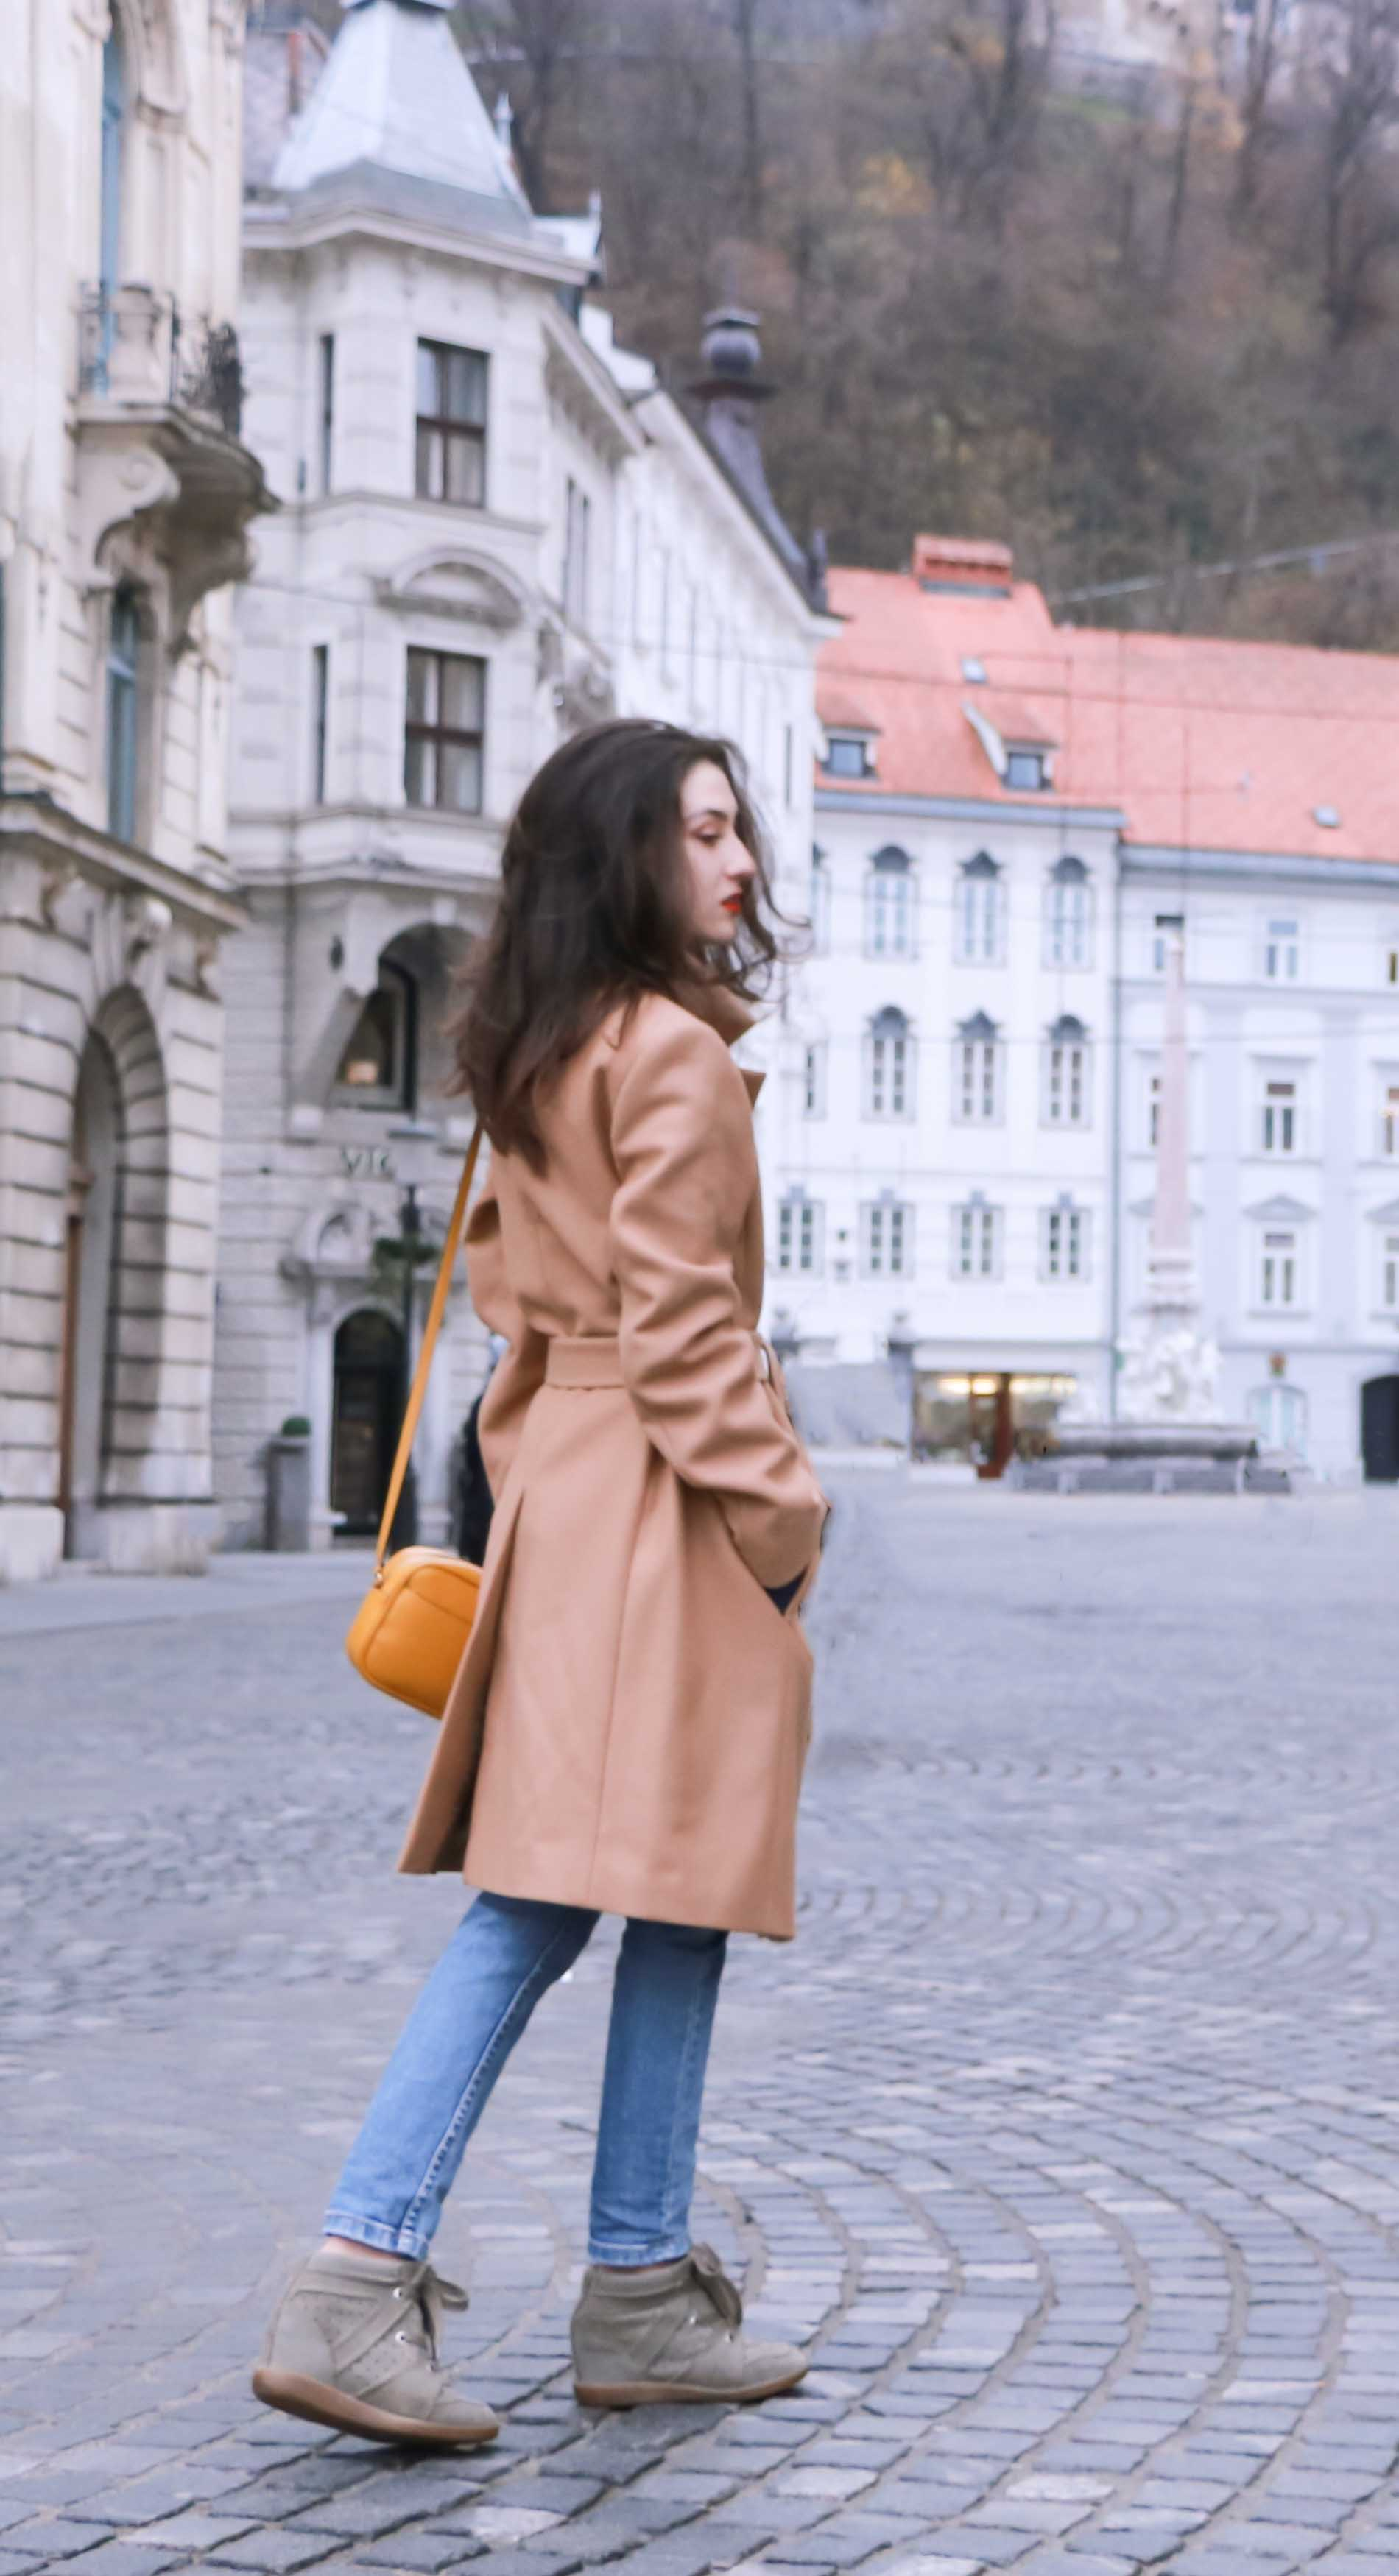 Fashion Blogger Veronika Lipar of Brunette from Wall Street wearing casual outfit, ESCADA wrap camel coat, A.P.C. blue jeans, Isabel Marant olive Bobby Sneakers, yellow shoulder bag from Escada, white Victorian blouse on the streets of Ljubljana